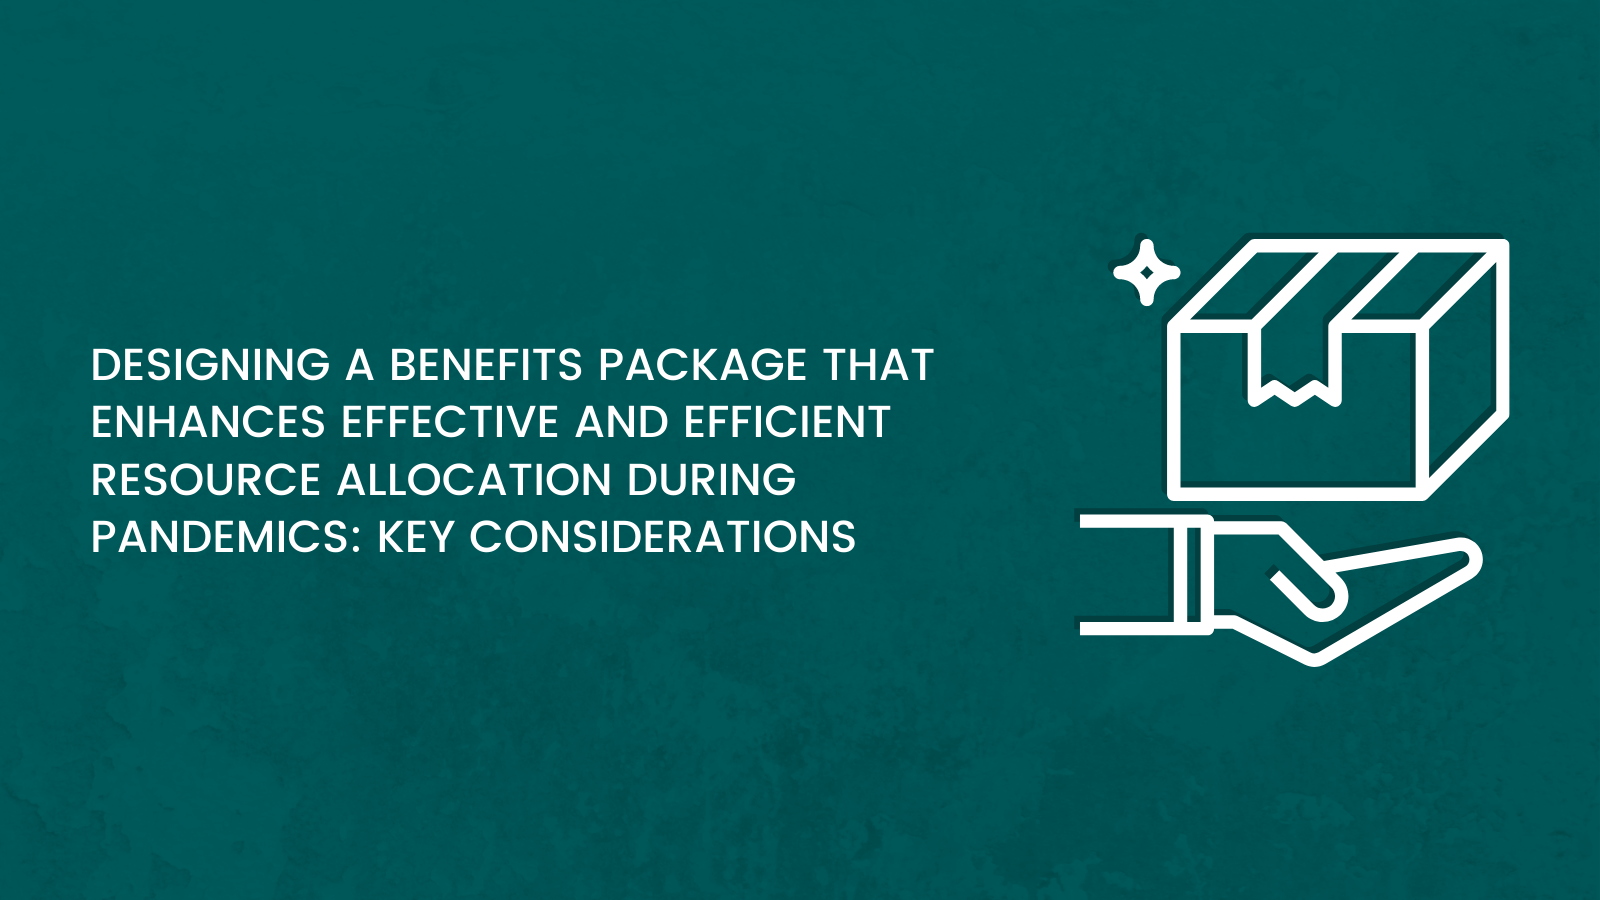 Designing a Benefits Package that Enhances Effective and Efficient Resource Allocation During Pandemics: Key Considerations